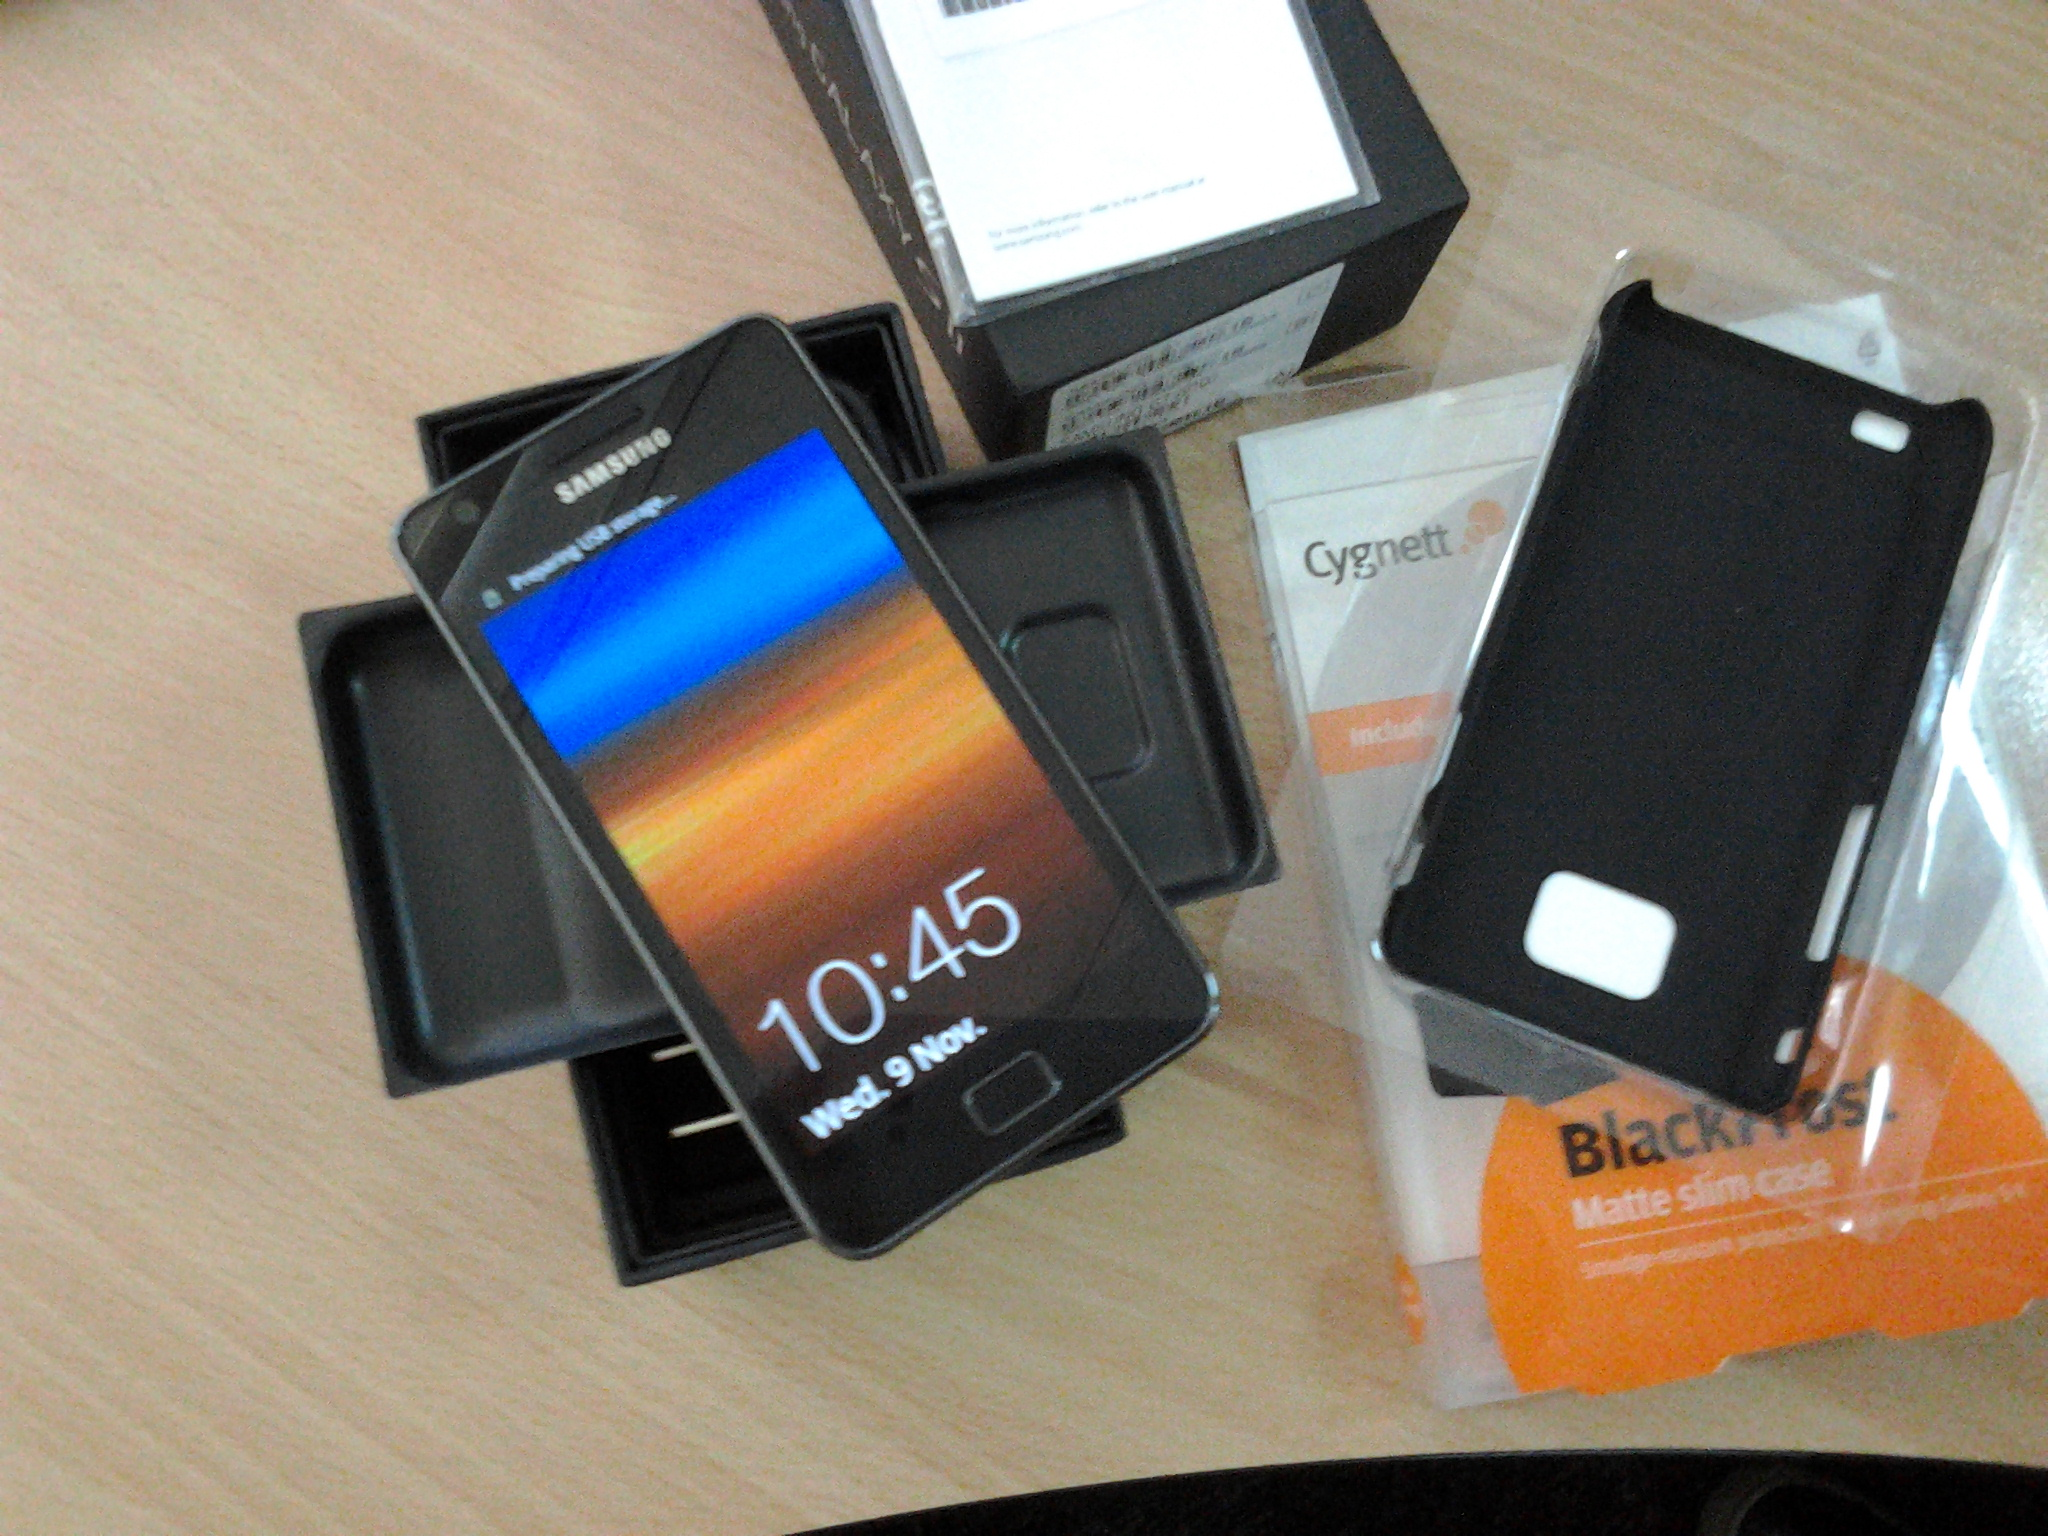 2011 11 09 10.49.26 Samsung Galaxy S II   Review, Specifications, Price In The Philippines